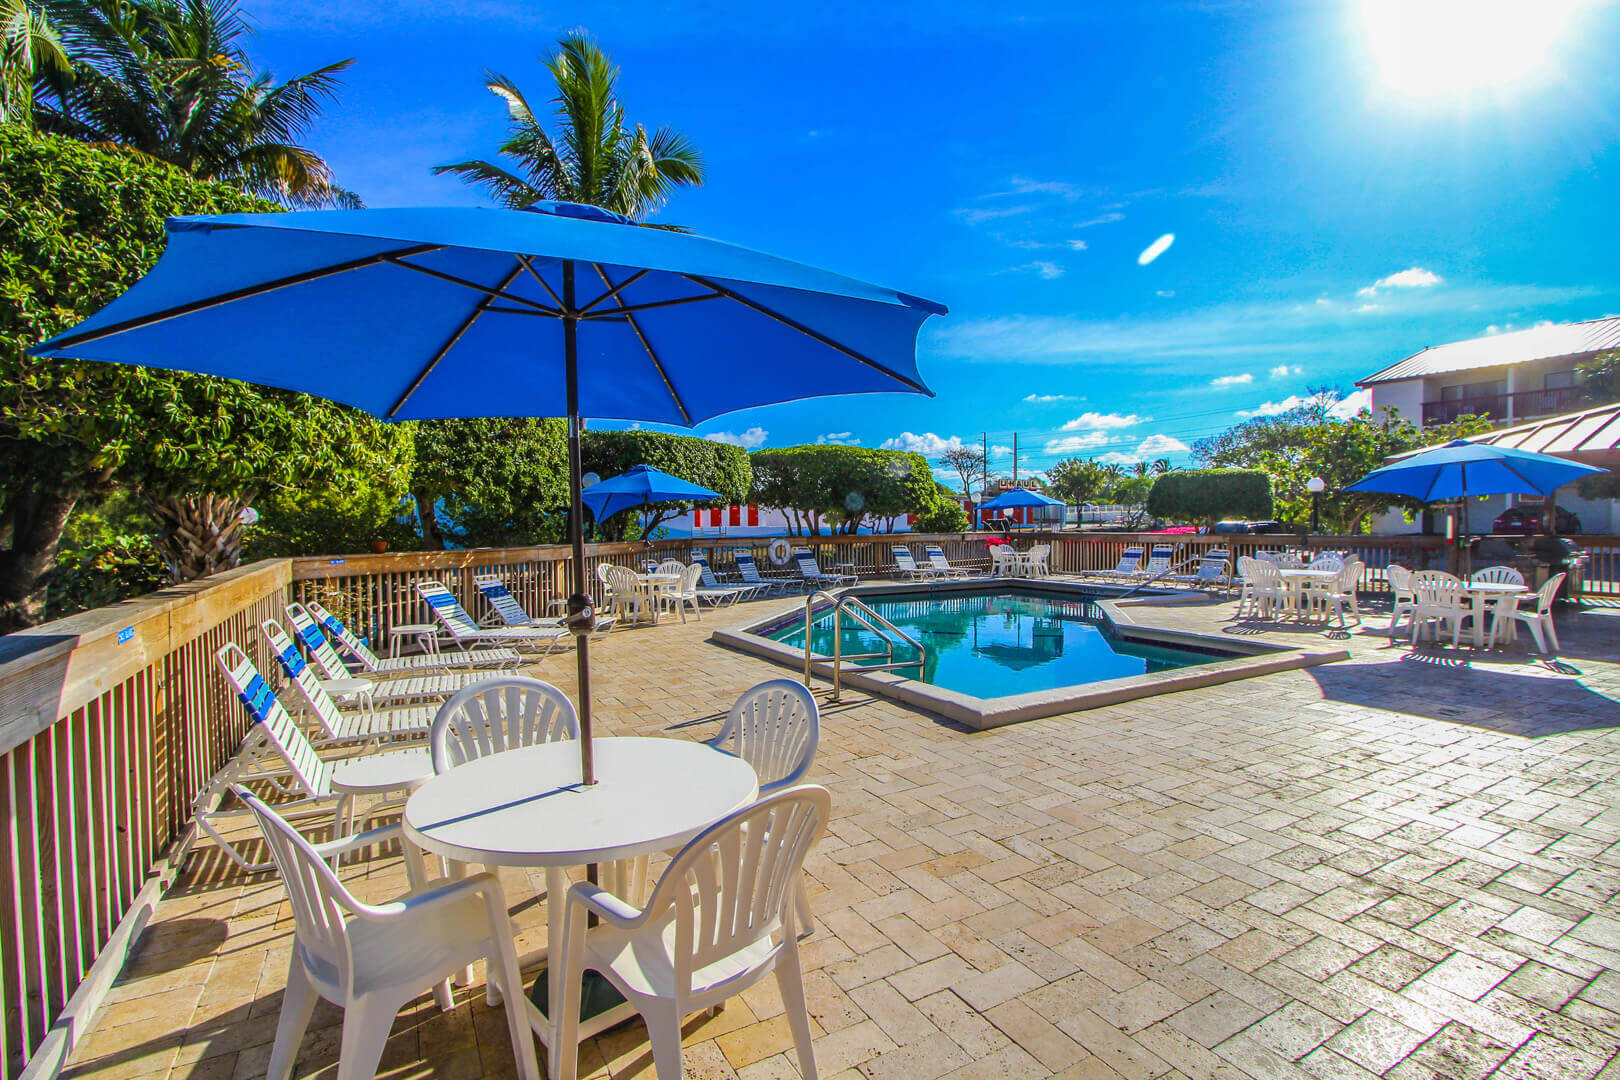 A refreshing pool with lounging area VRI's Florida Bay Club in Florida.